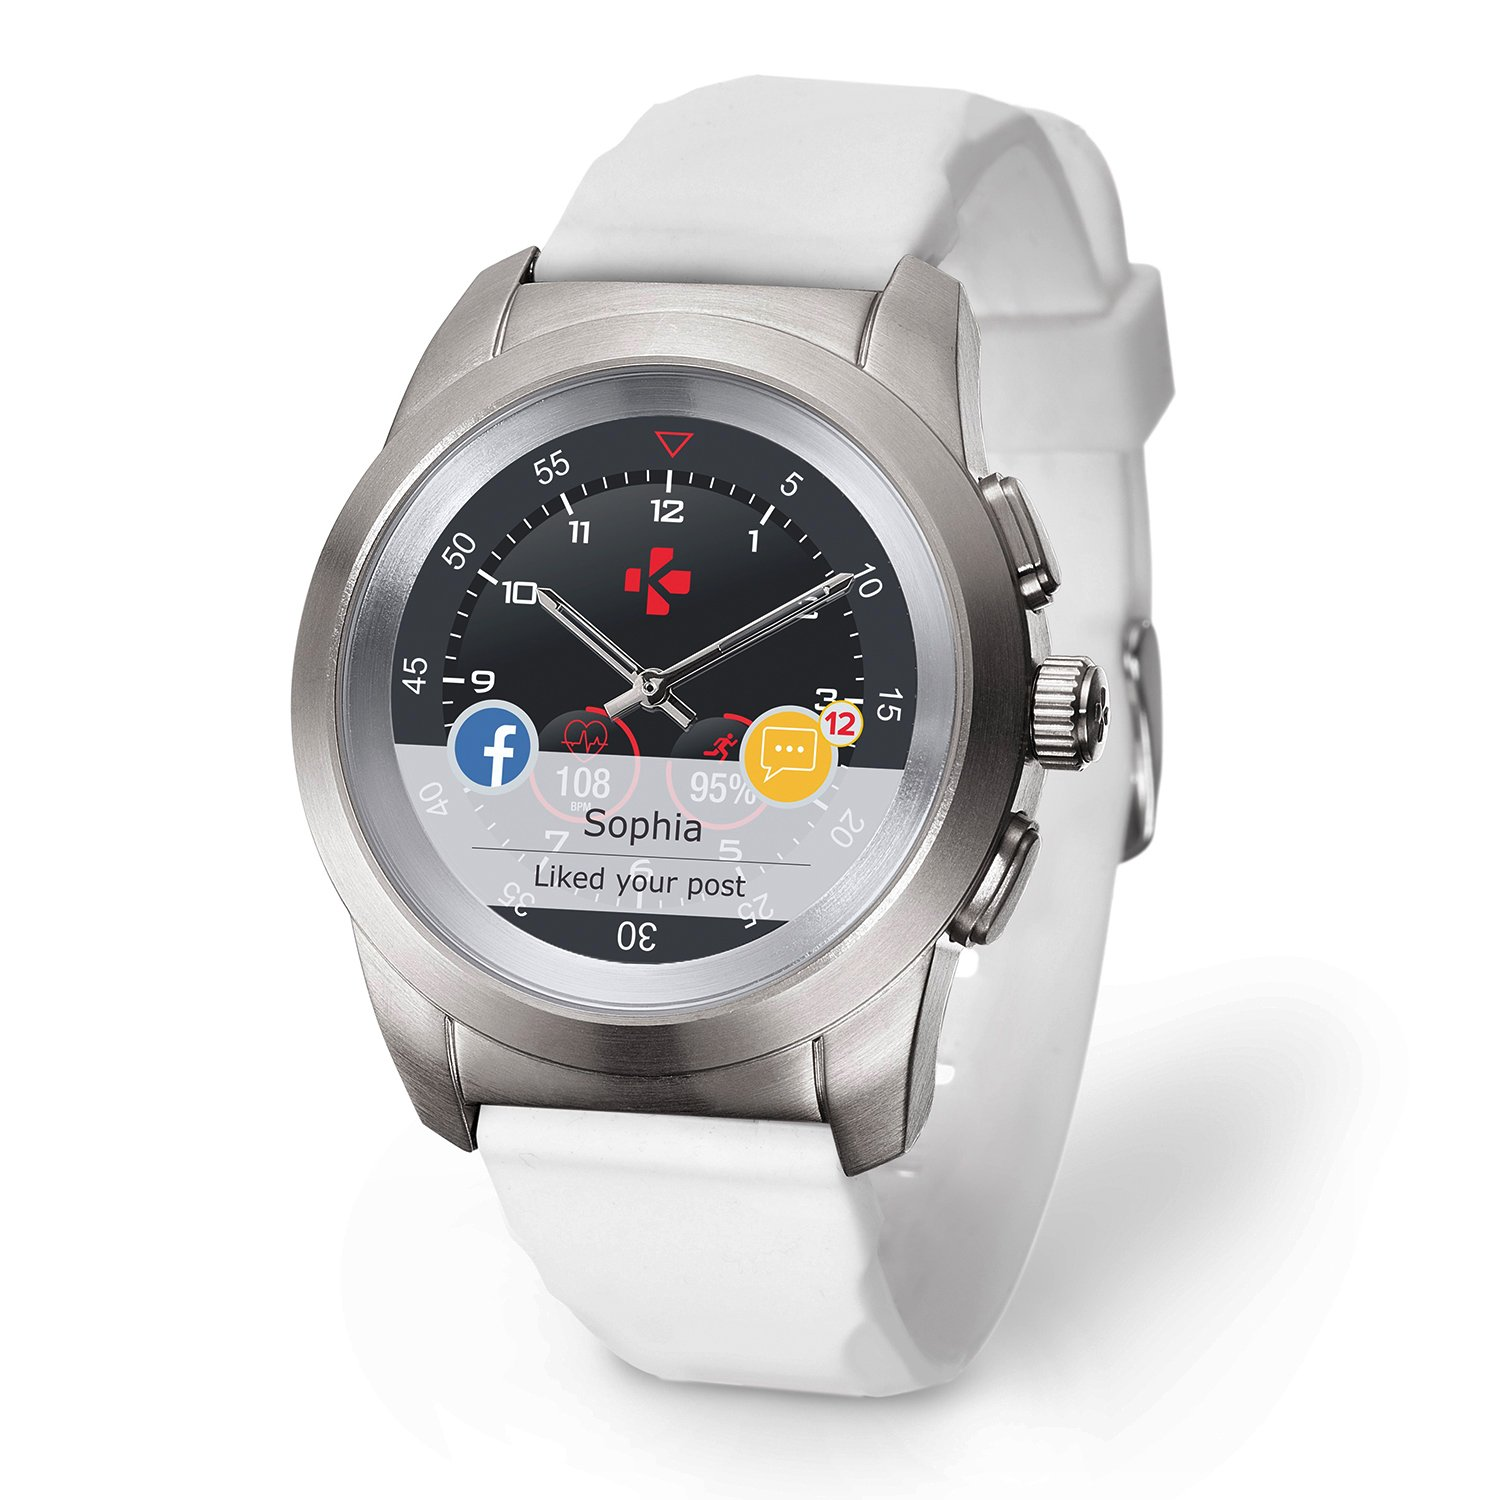 MyKronoz ZeTime Petite Original Hybrid Smartwatch 39mm with mechanical hands over a color touch screen – Brushed Silver / White Silicon Flat